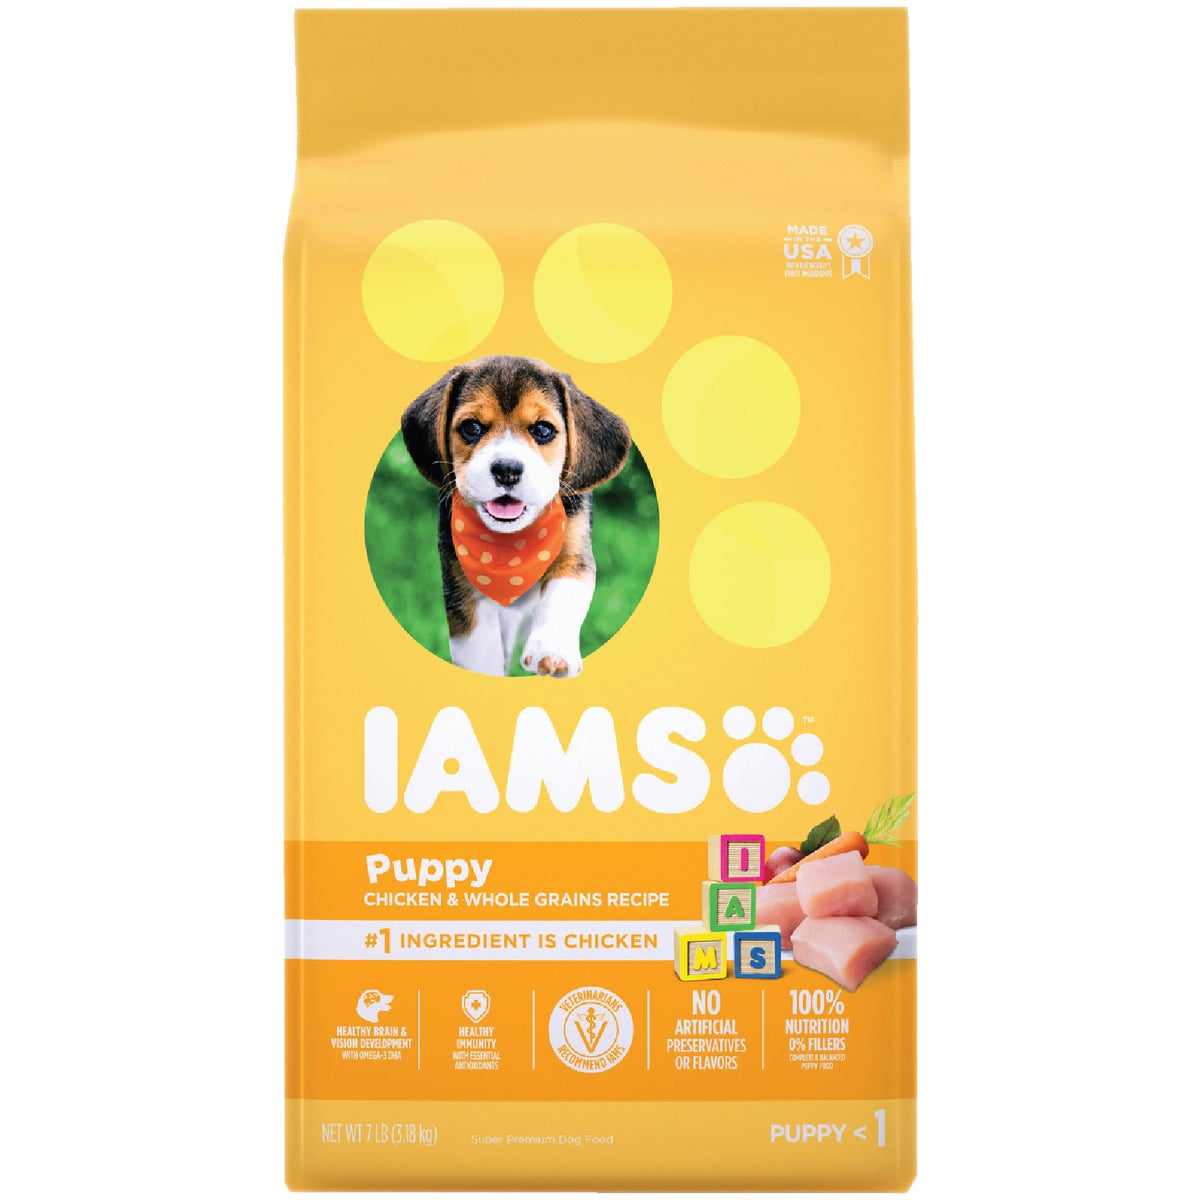 5.7LB ORGL PUPPY FOOD - 10839 by Wolverton Iams